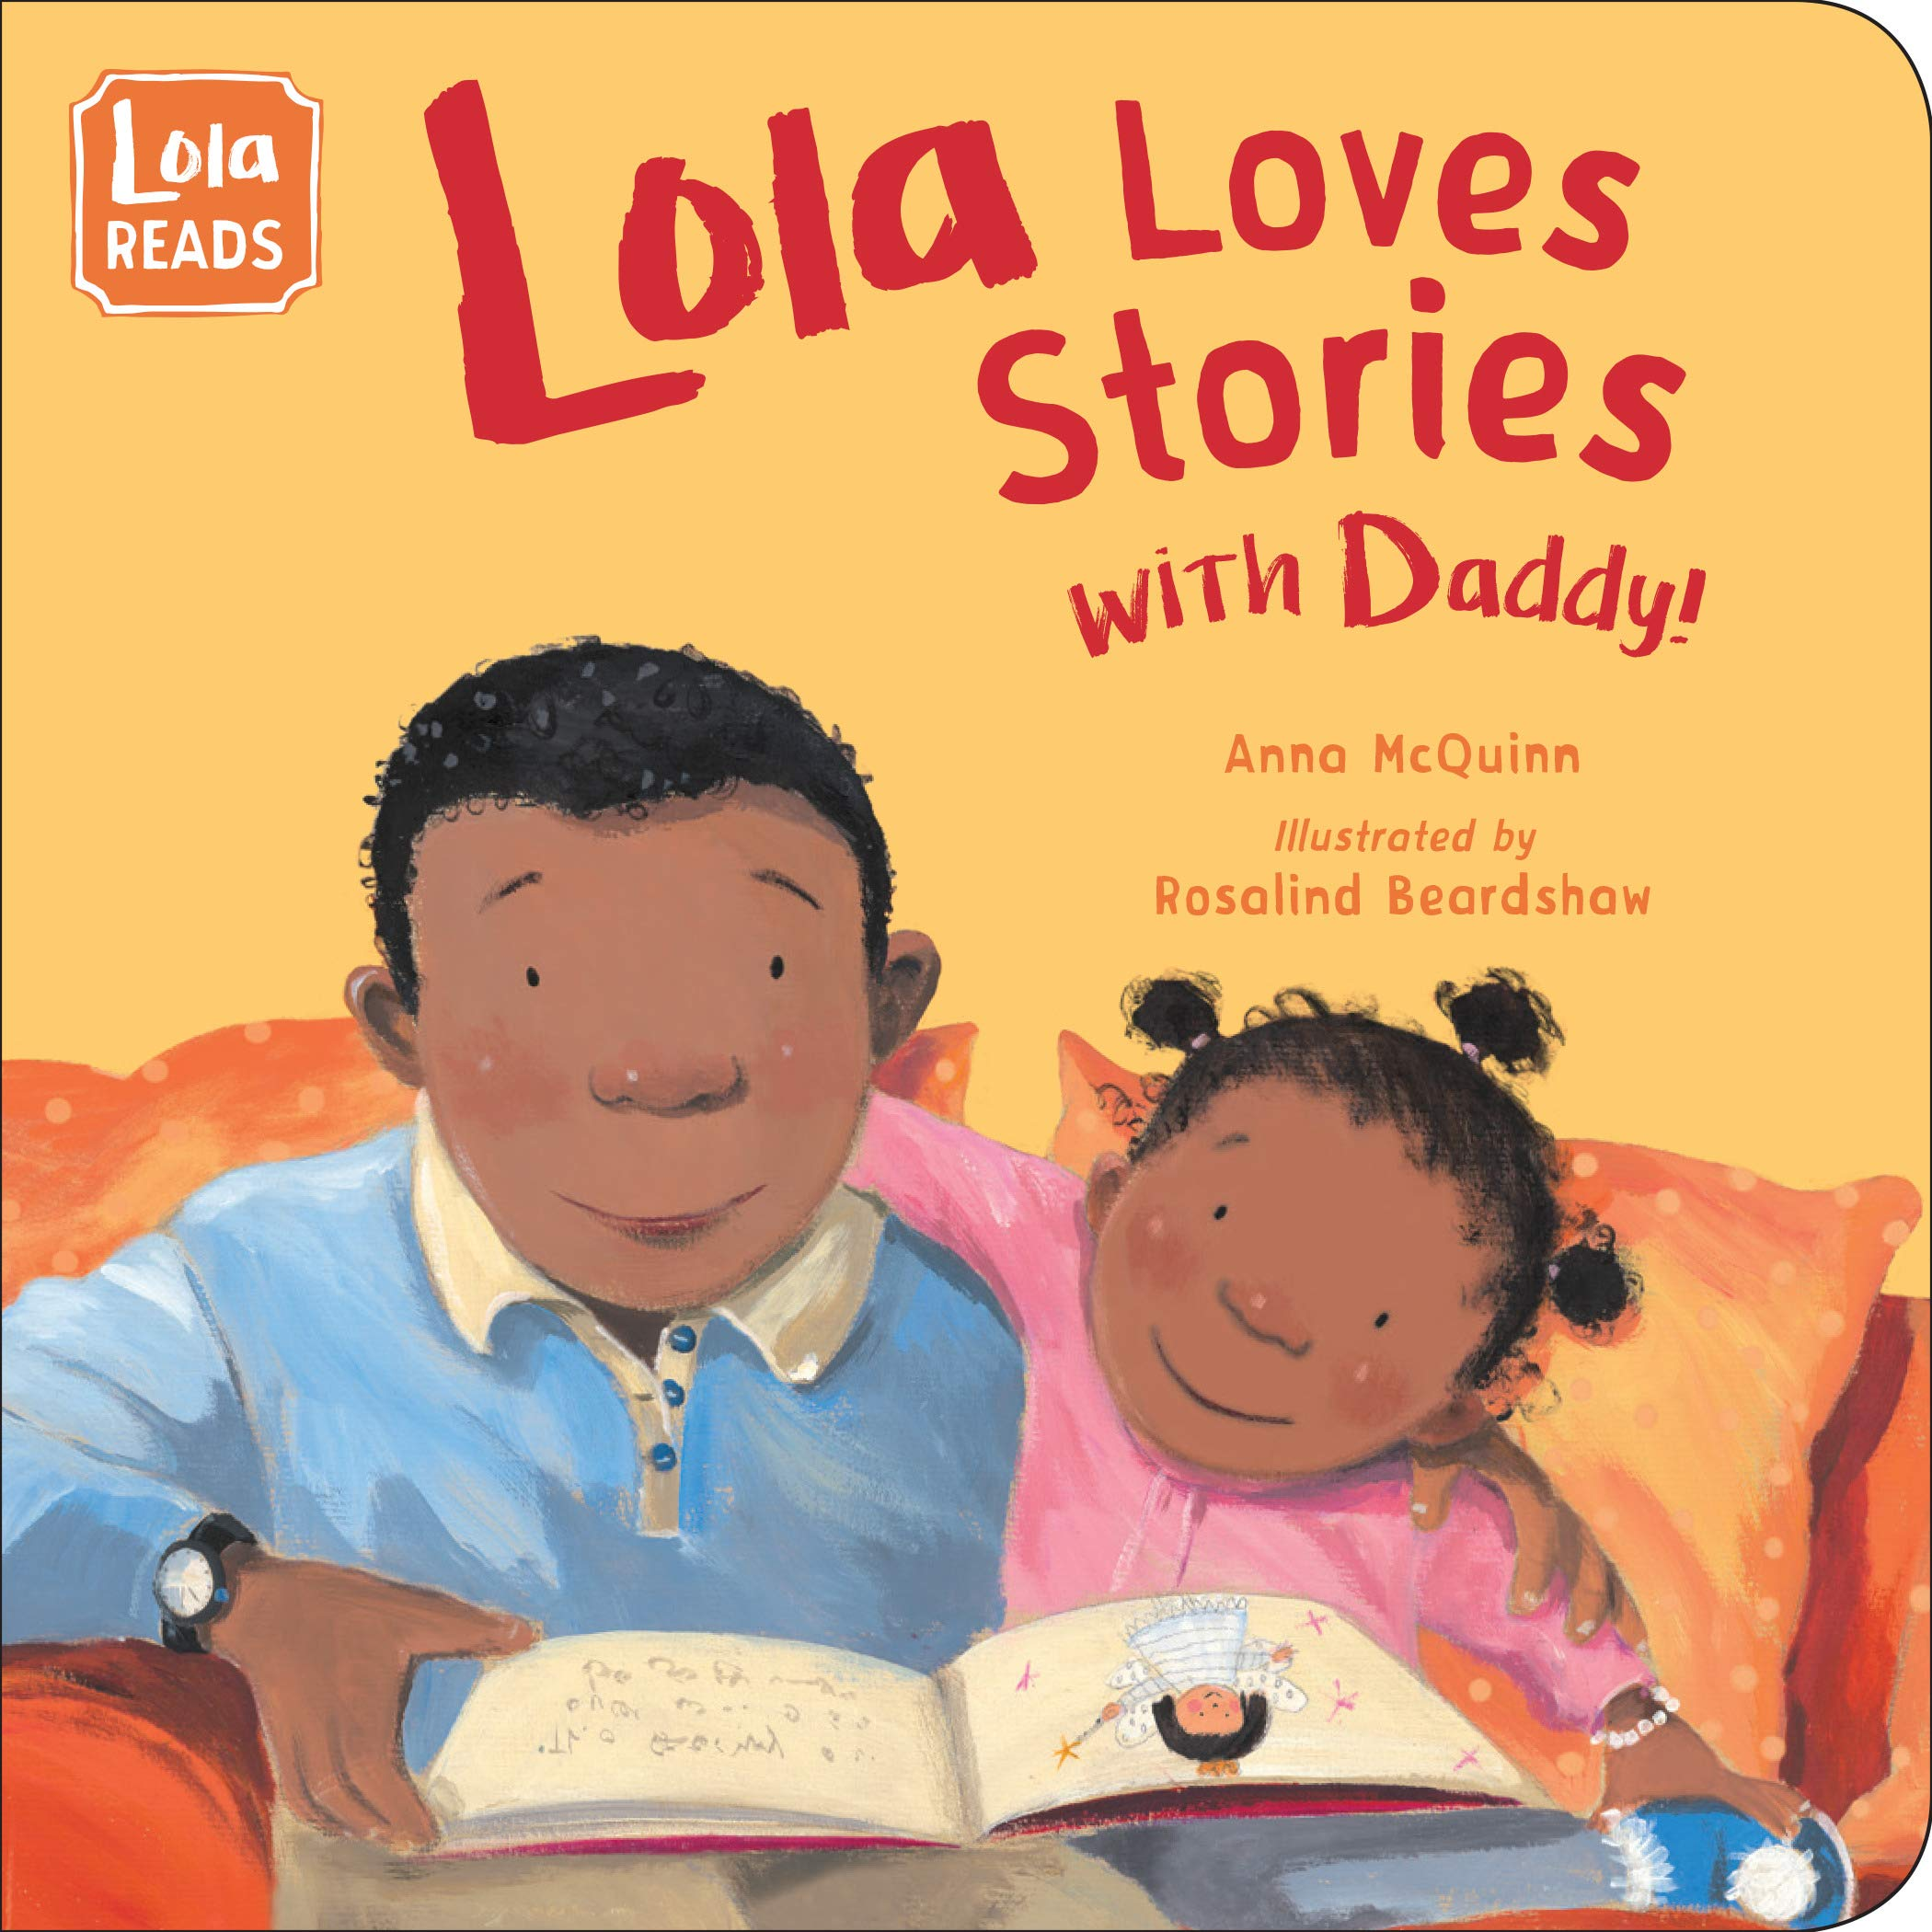 Lola Loves Stories with Daddy (Lola Reads): McQuinn, Anna ...